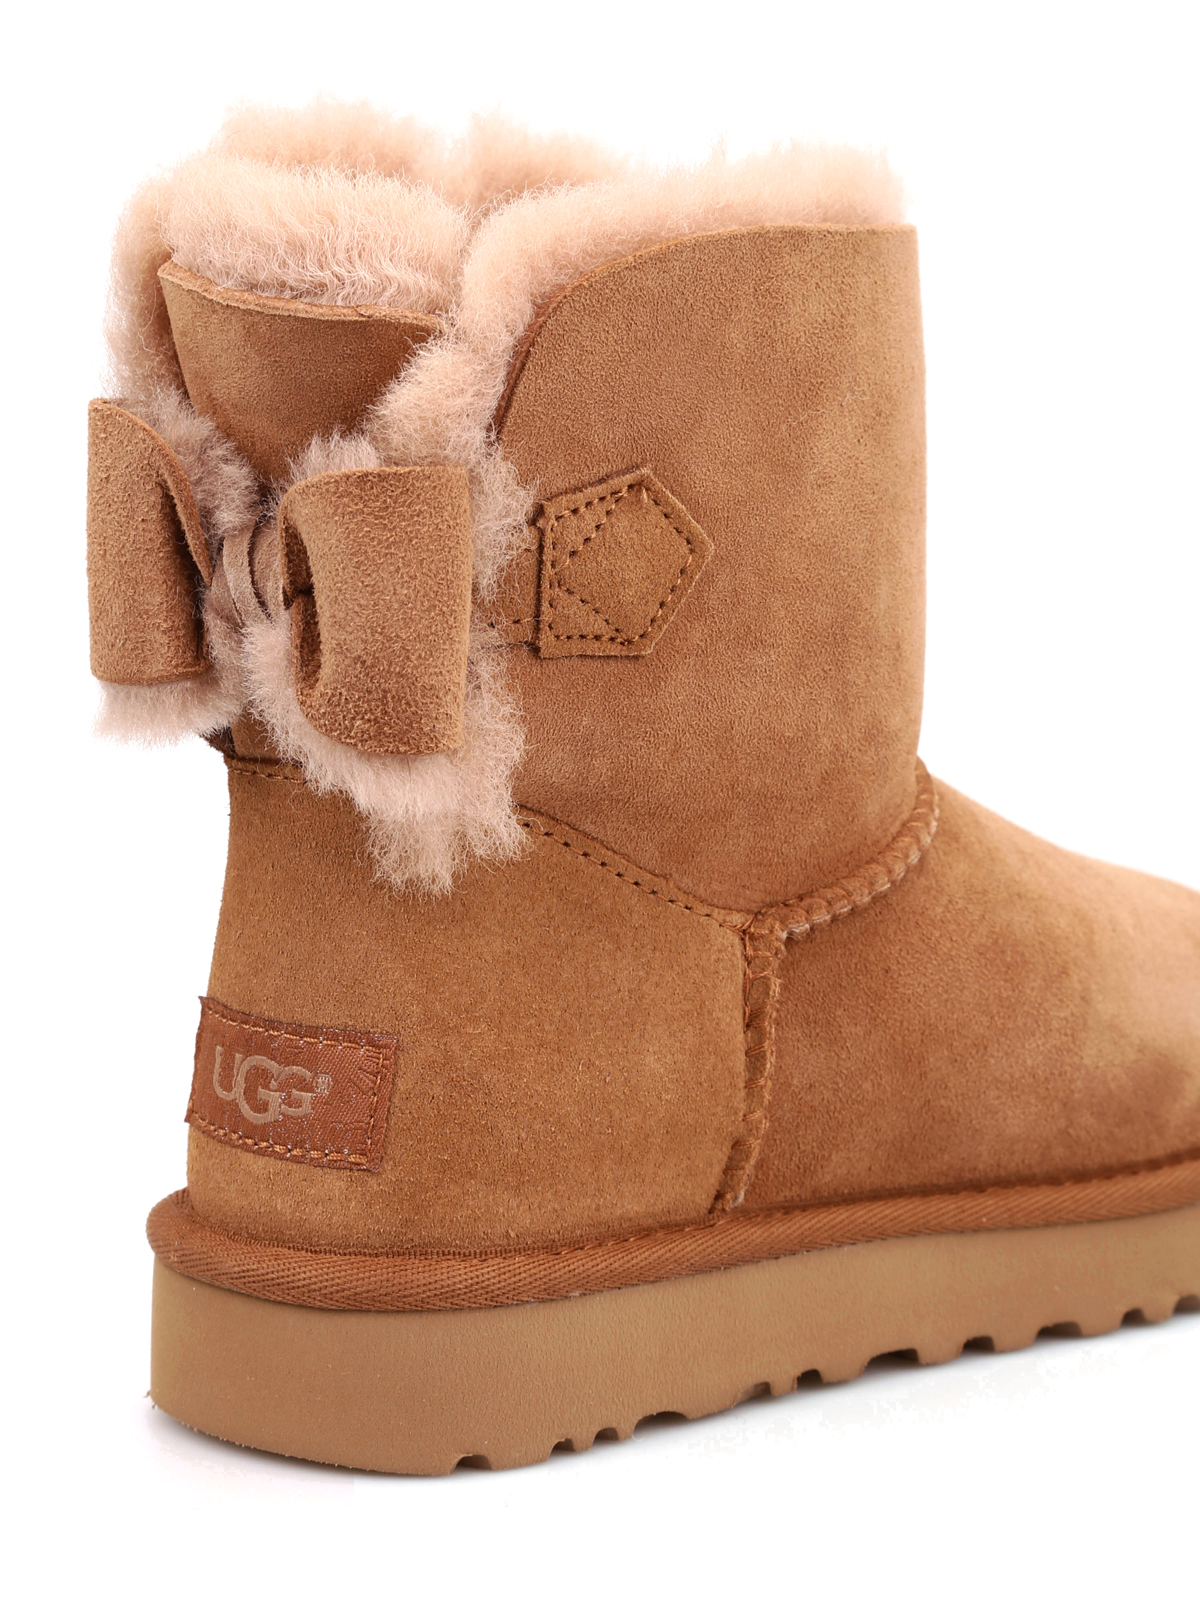 UGGs Outlet Store Online - Get The Lastest Cheap UGG Boots Sale Online,Shop Offer UGG Classic Tall/Short Boots,Slippers & More Style Select,No Tax And Free Shipping!